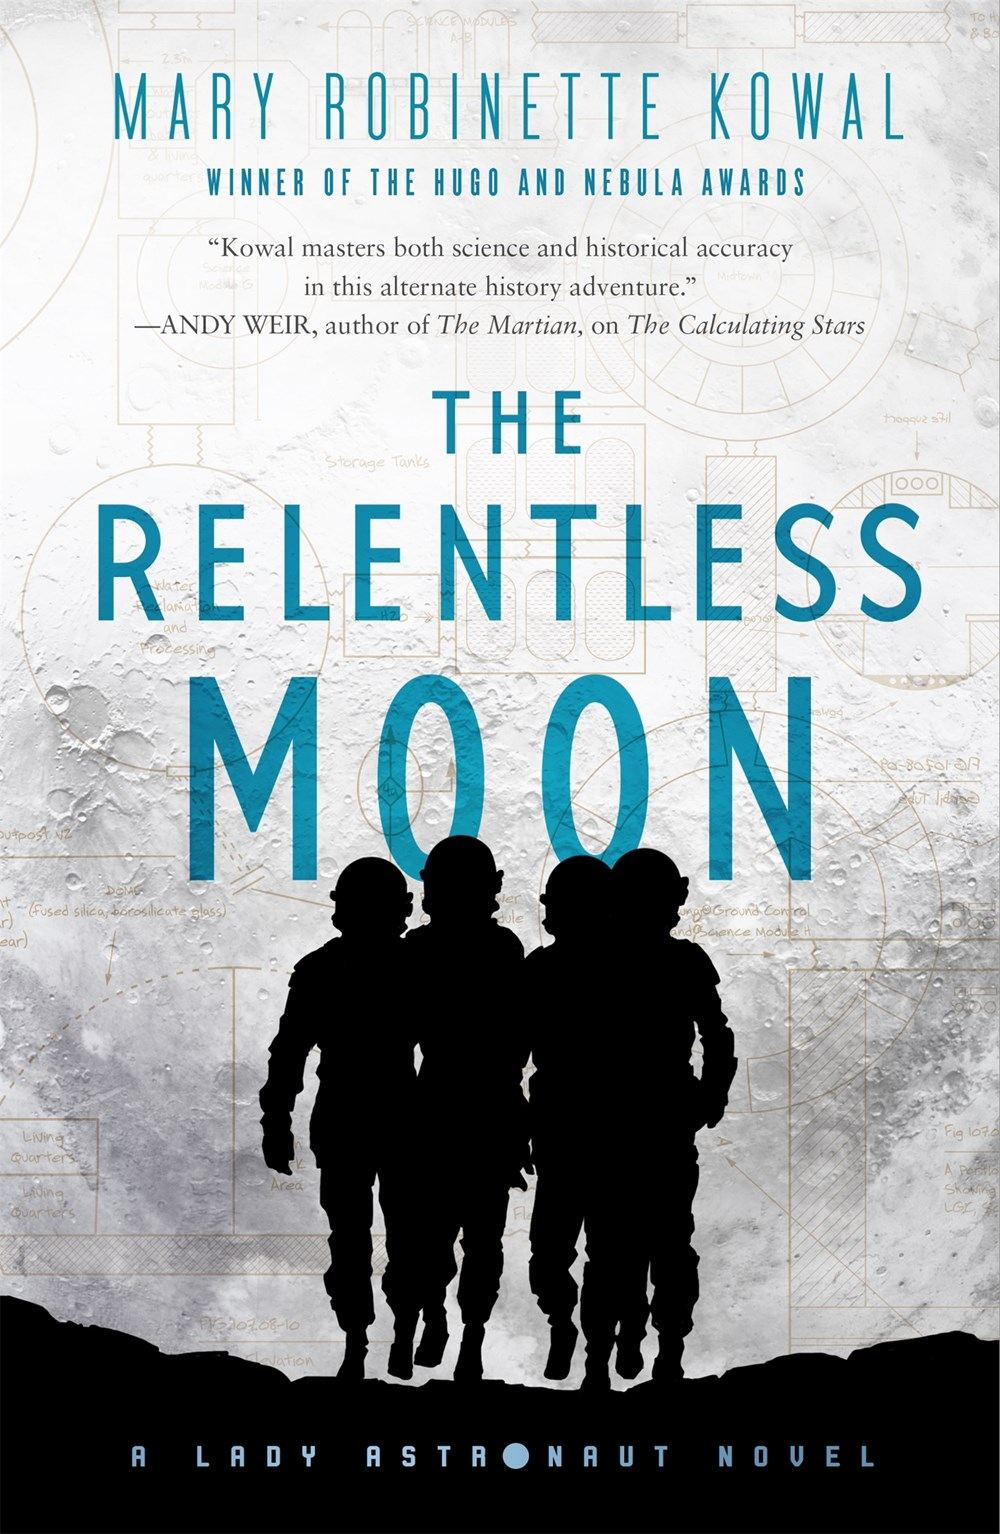 The Relentless Moon - Book Cover